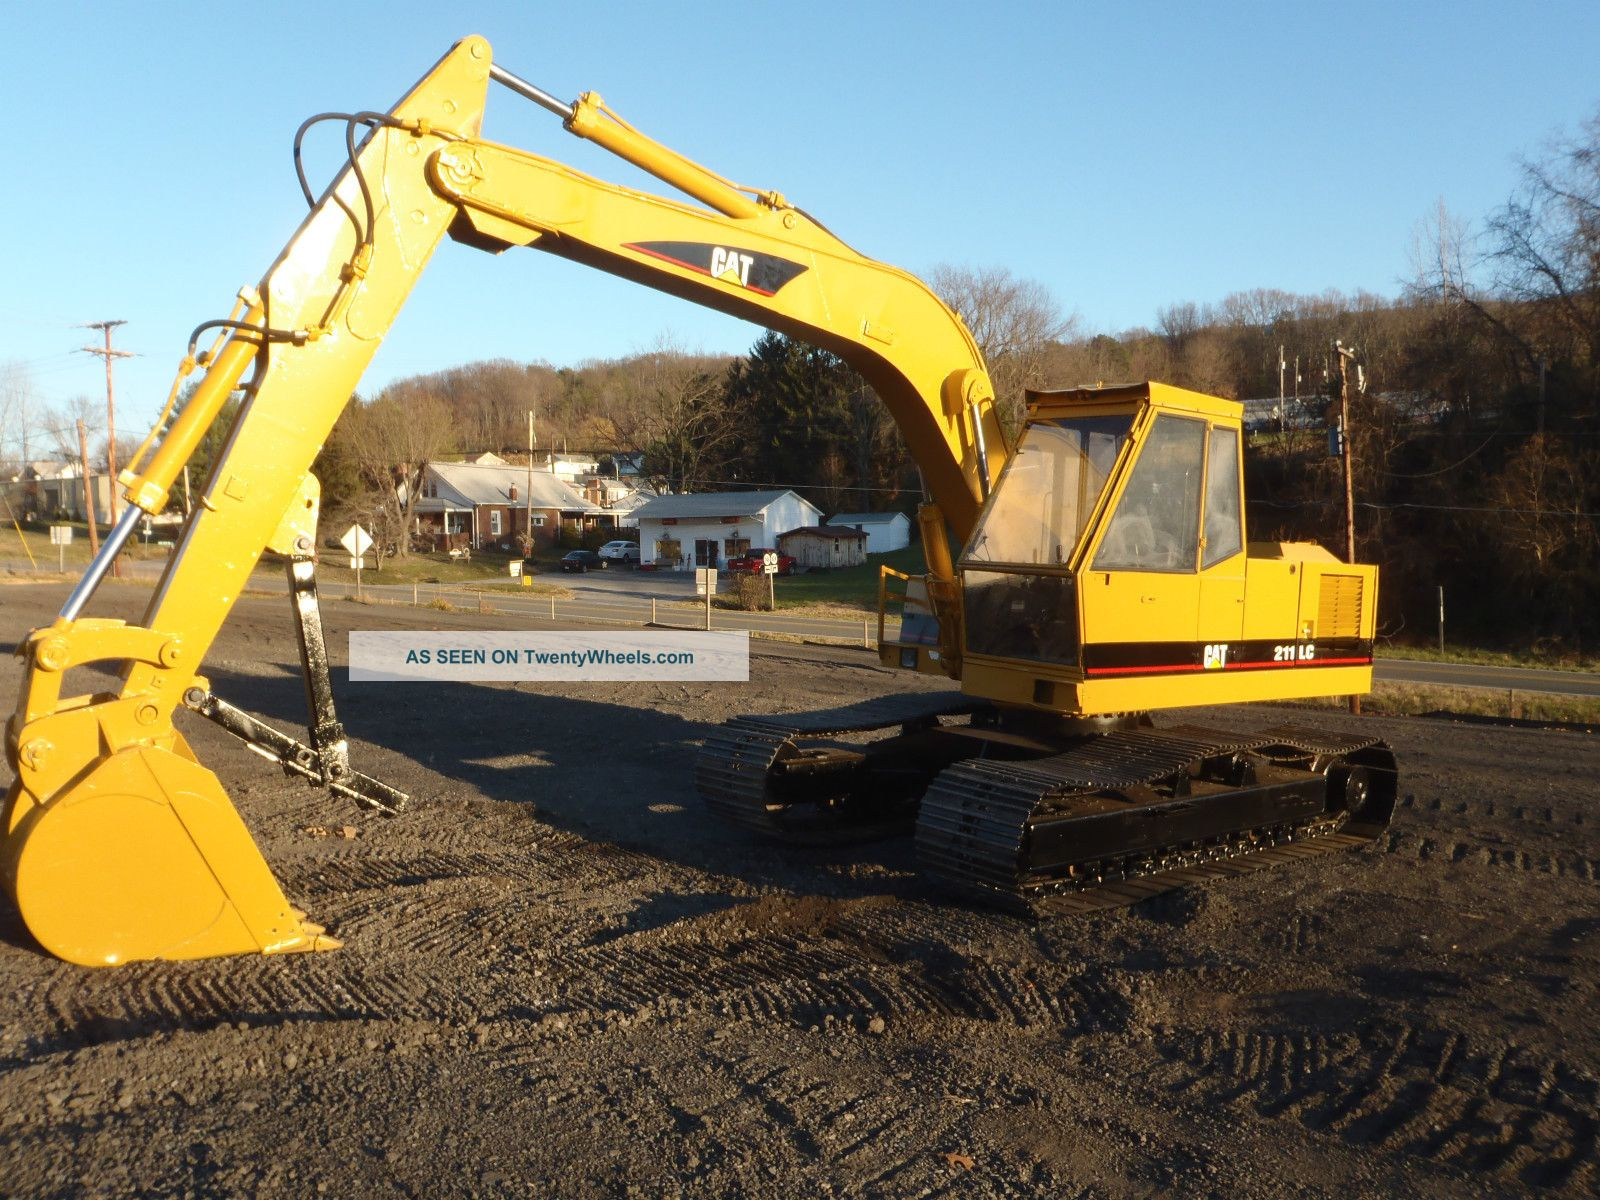 Caterpillar 211 Lc Track Excavator Good U/c Runs Good Great Farm Machine Export Excavators photo